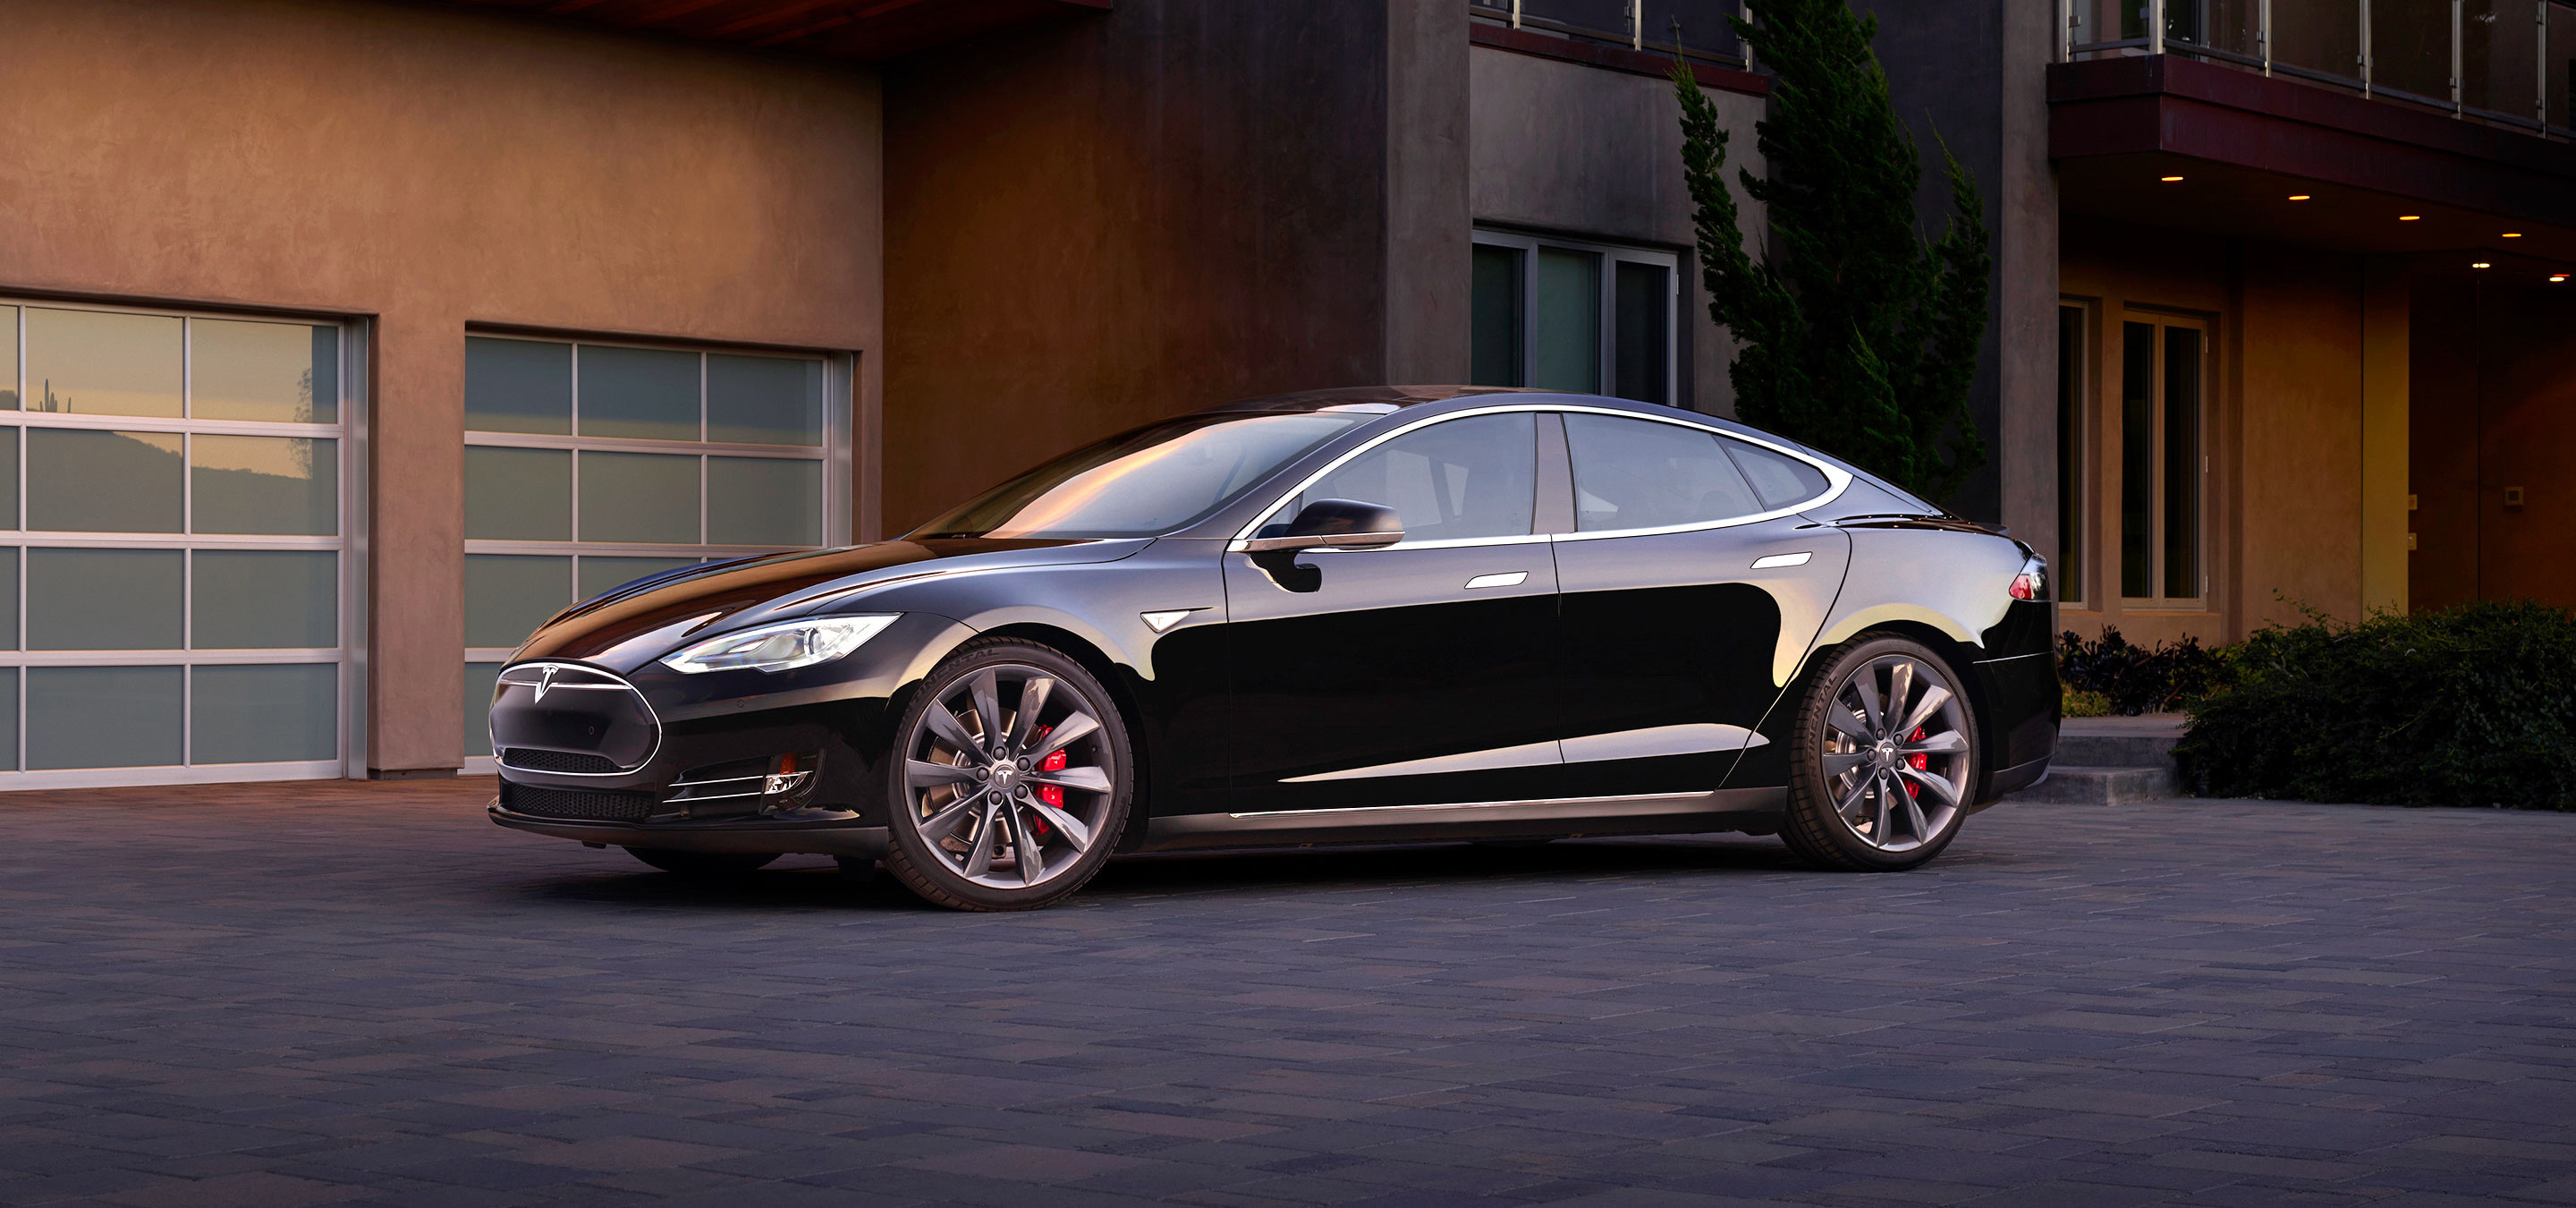 lovefest tesla model s owners more likely to recommend the brand. Black Bedroom Furniture Sets. Home Design Ideas